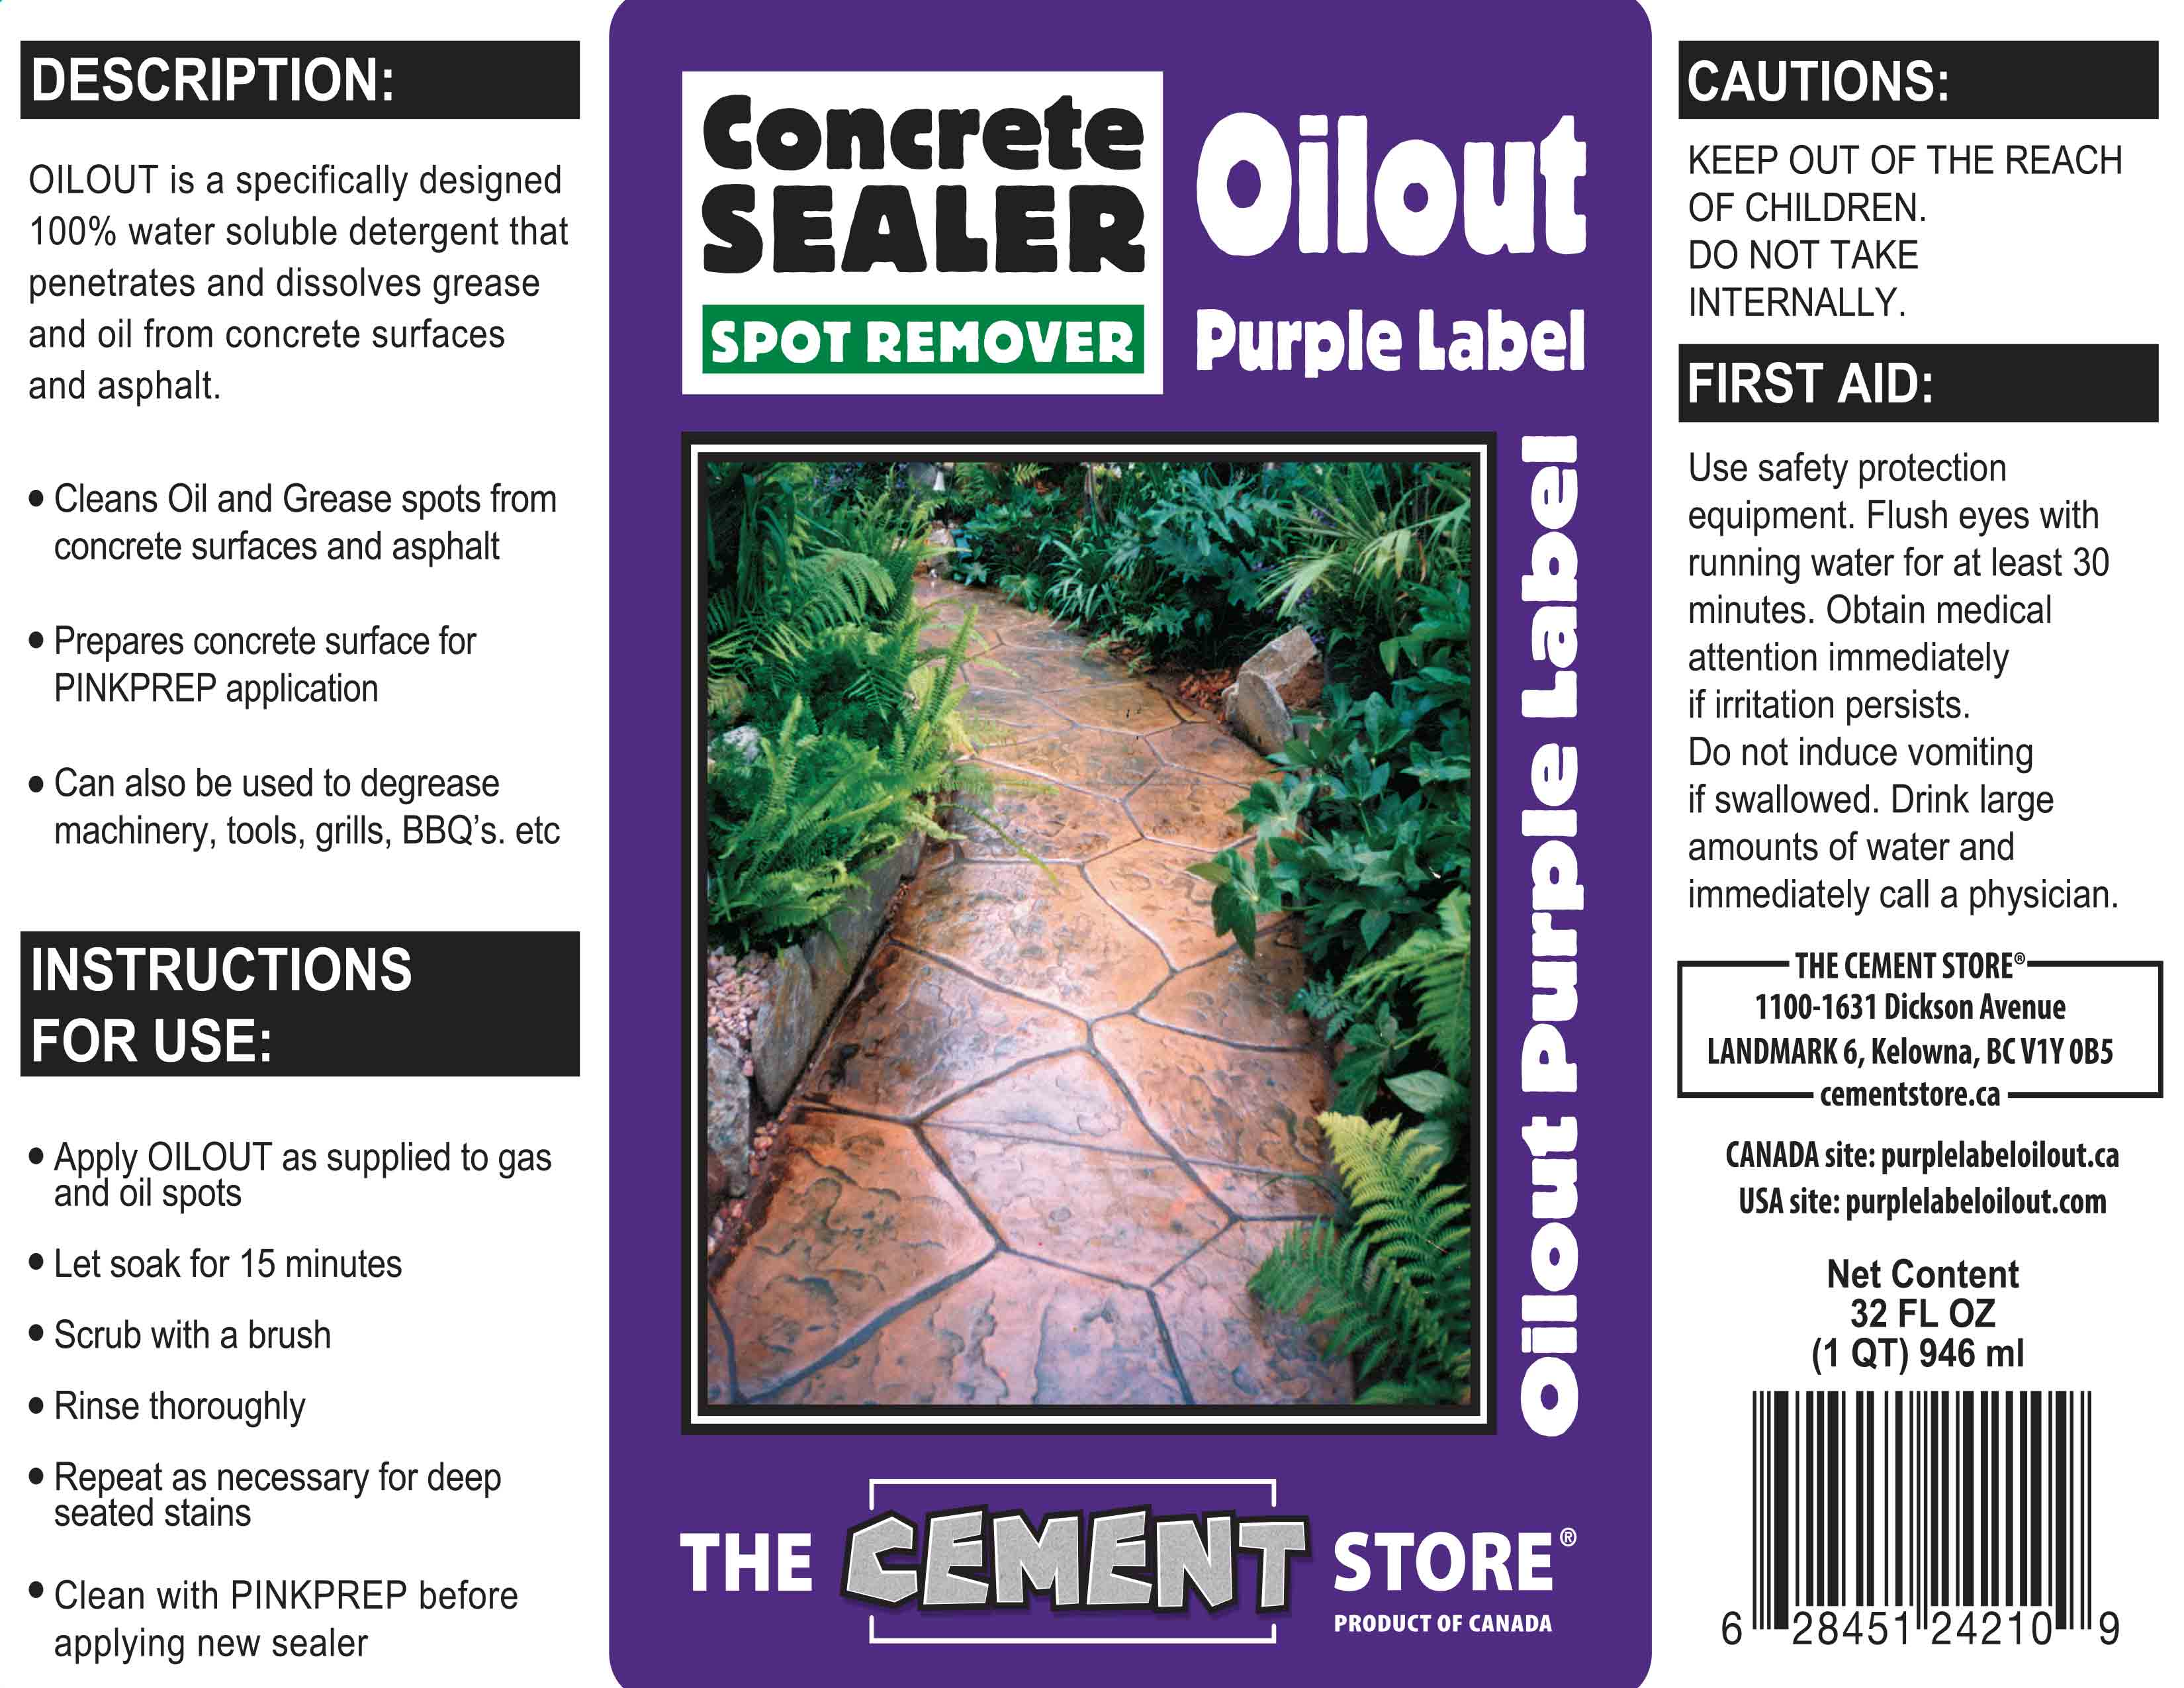 THE CEMENT STORE PURPLE LABEL OIL OUT APPLICATION TIPS